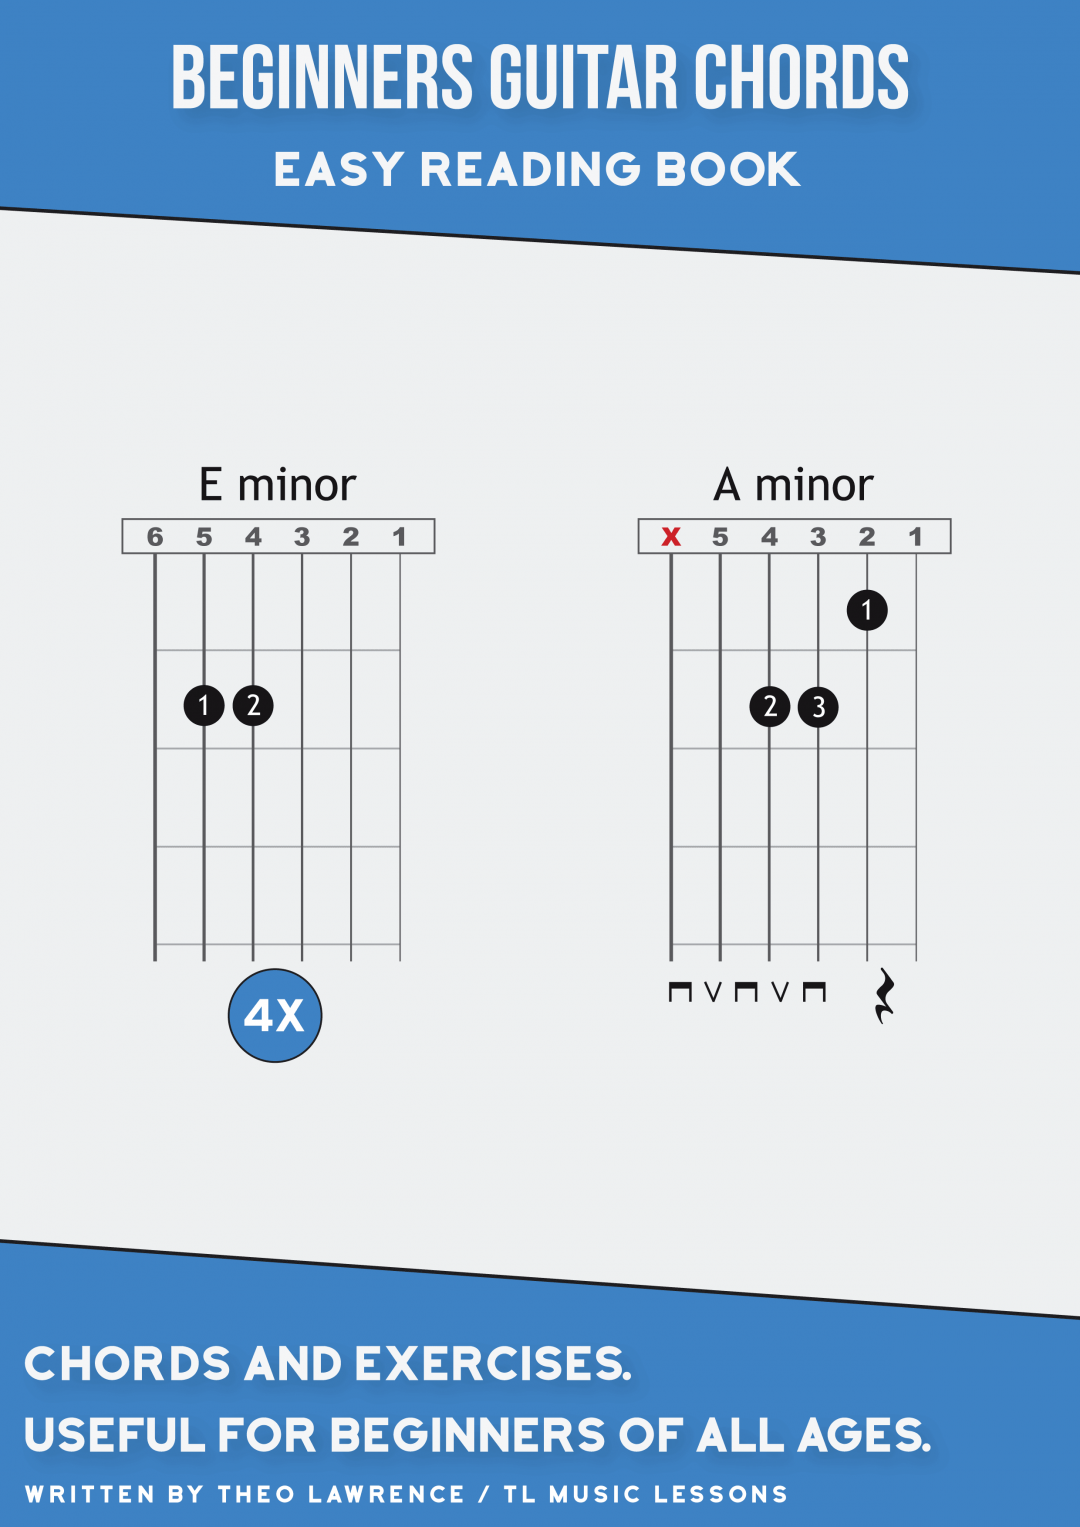 Beginners Guitar Chords – Easy Reading Book